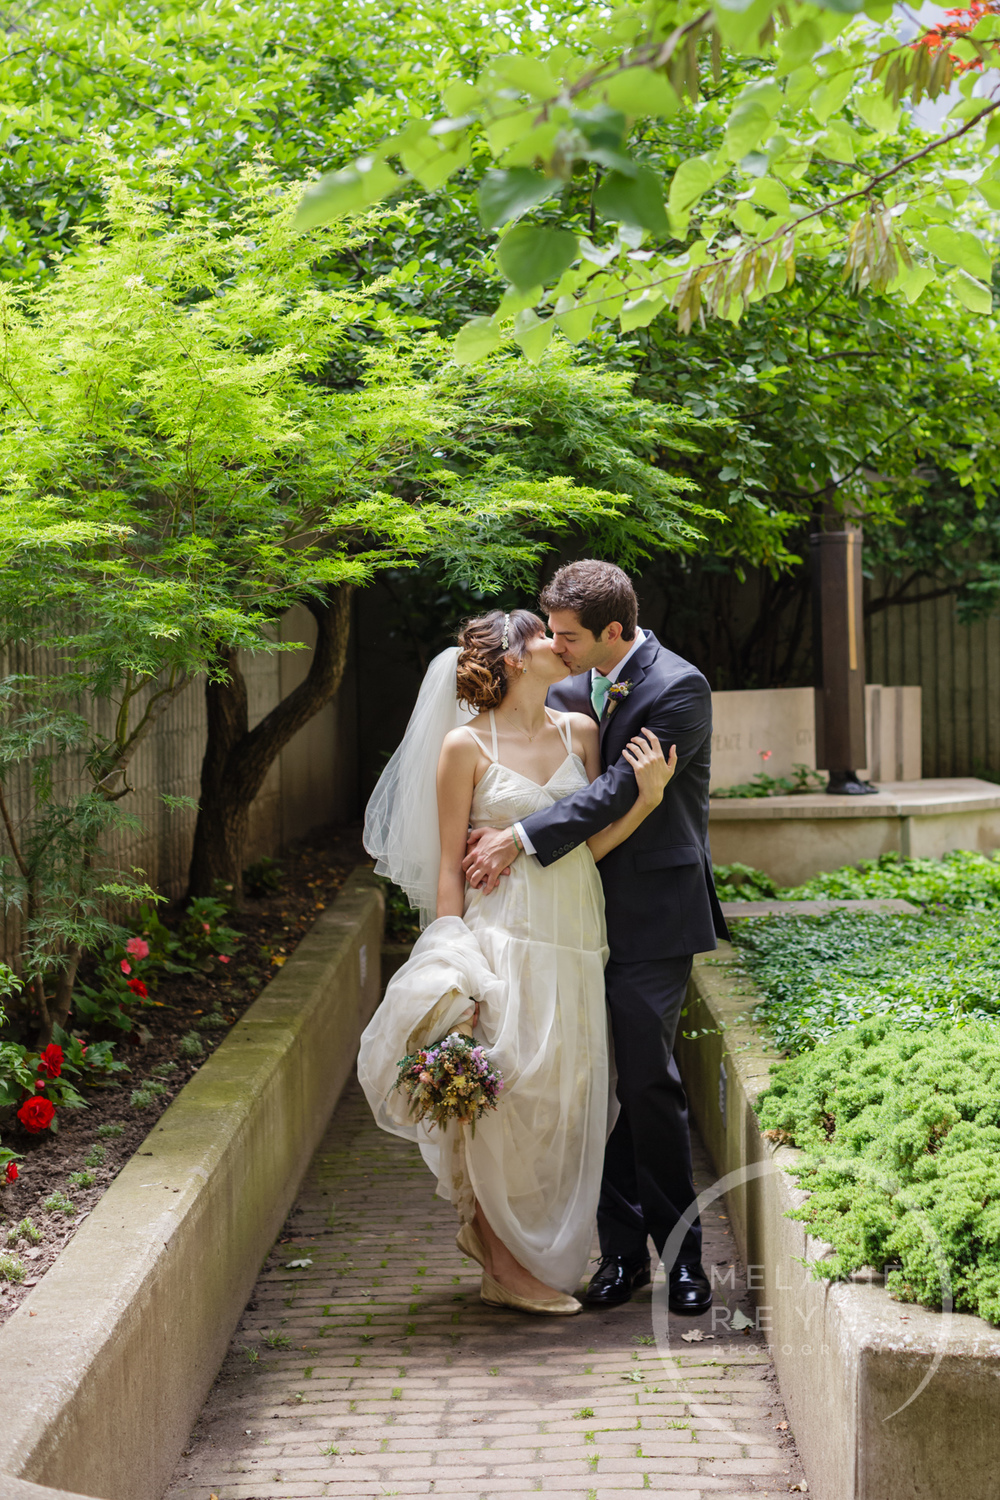 carlylewie_annarbor_wedding_-15.jpg